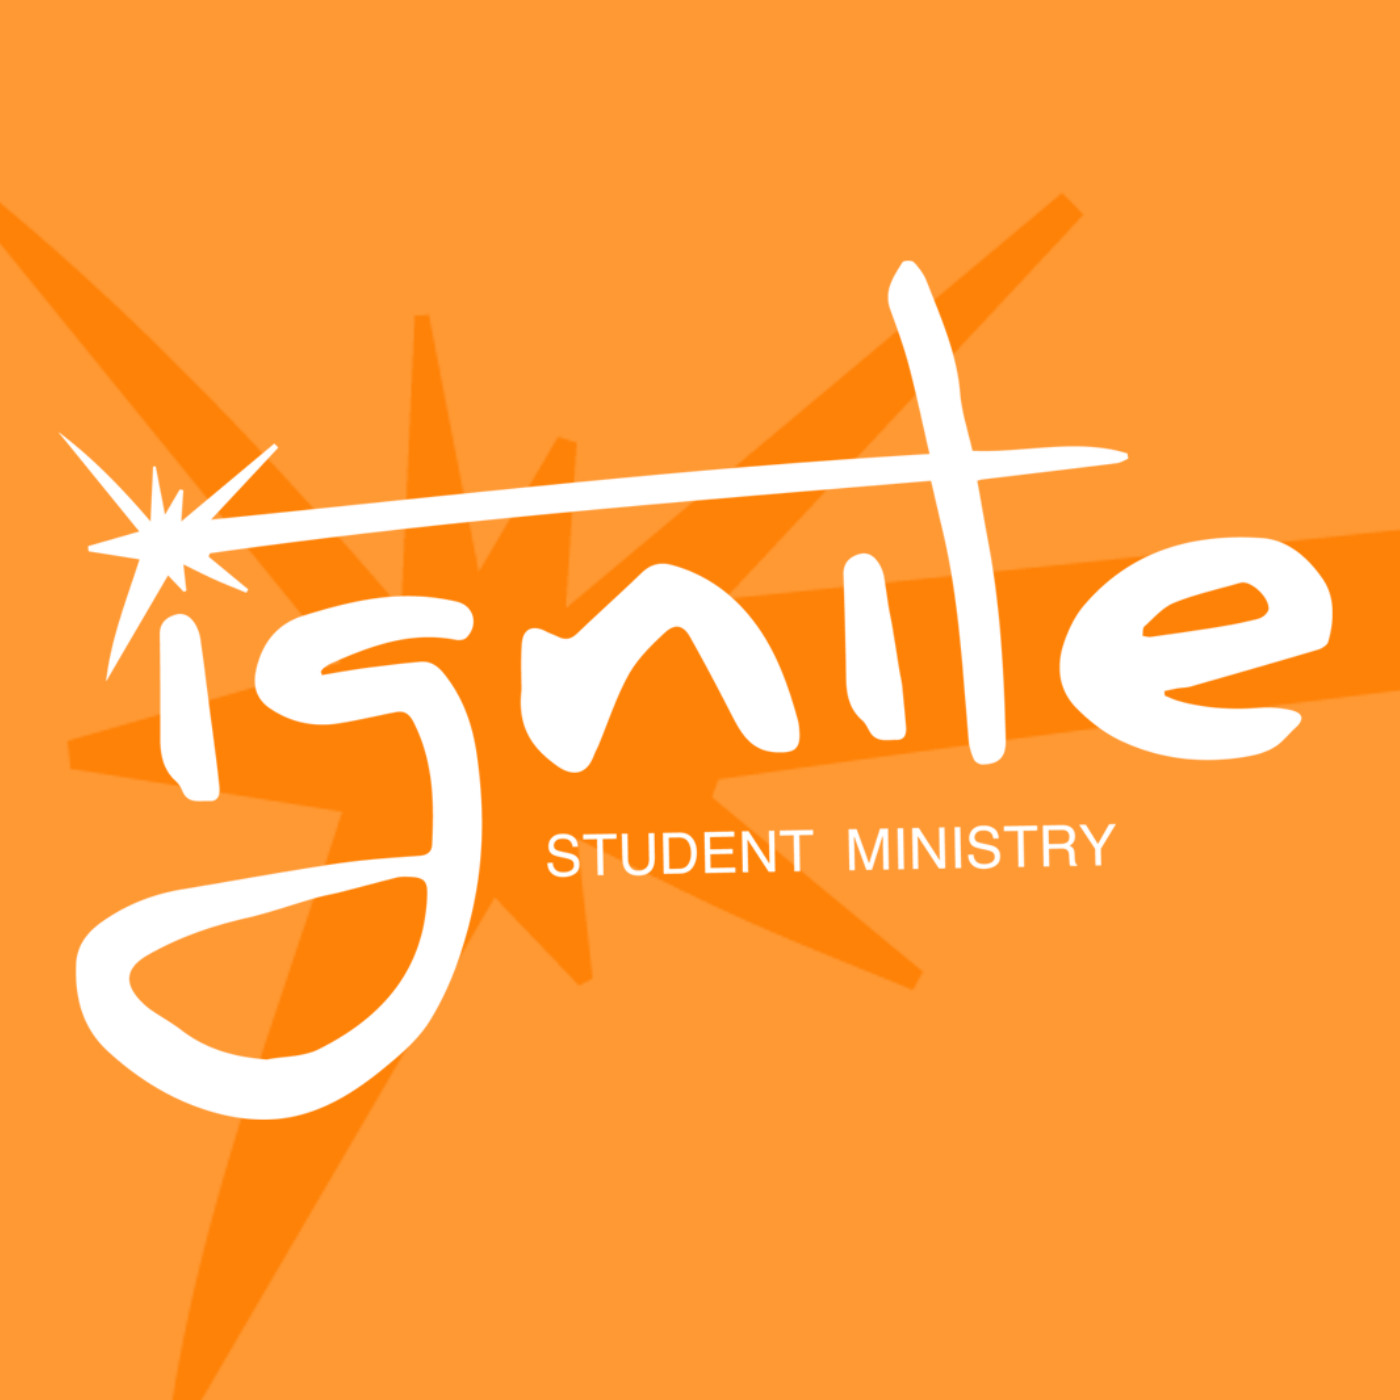 Ignite Student Ministry